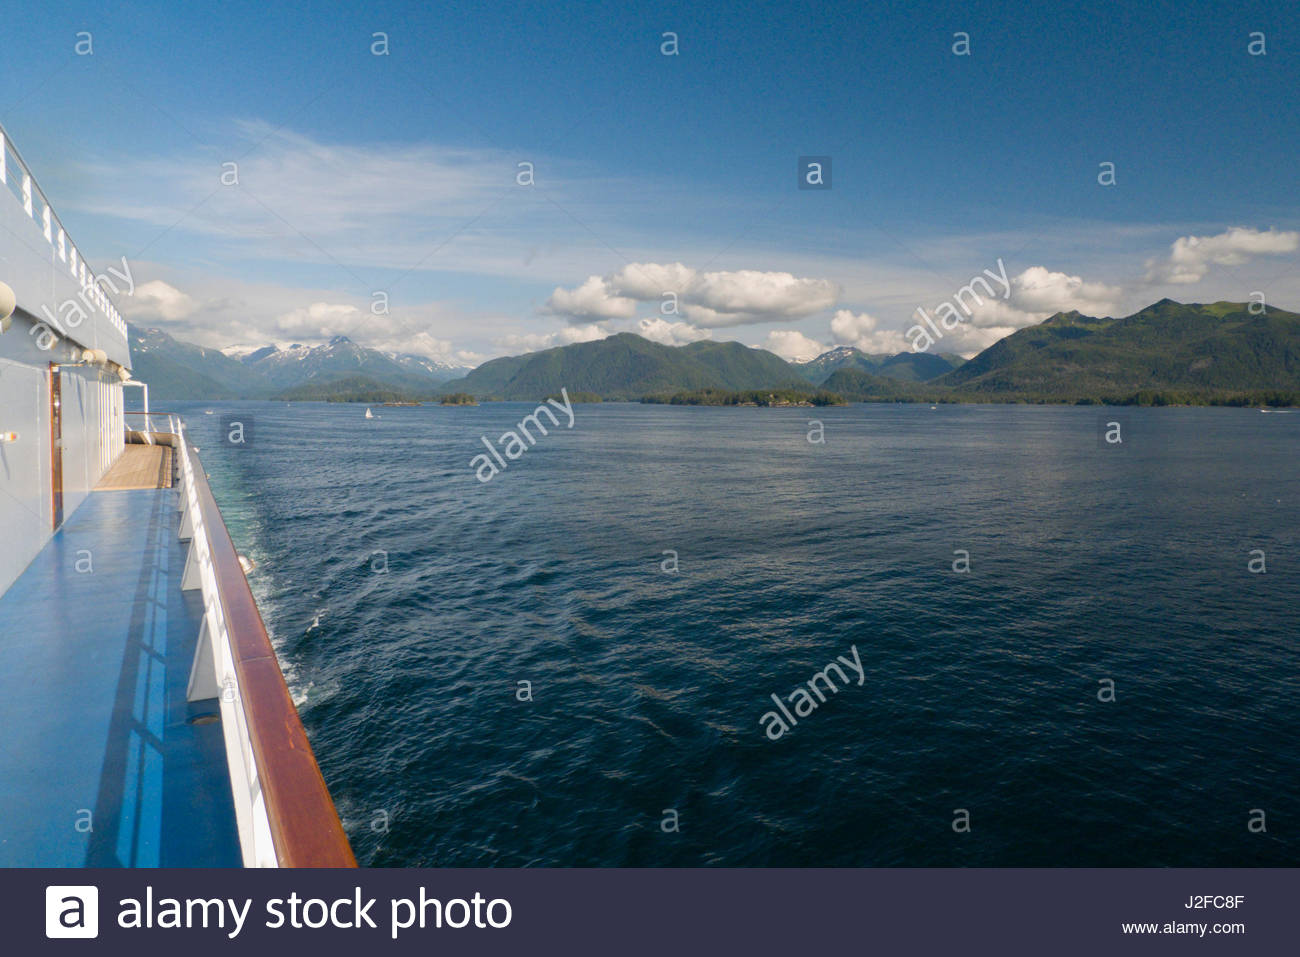 View of Sitka from Sitka Sound, Alaska, USA - Stock Image